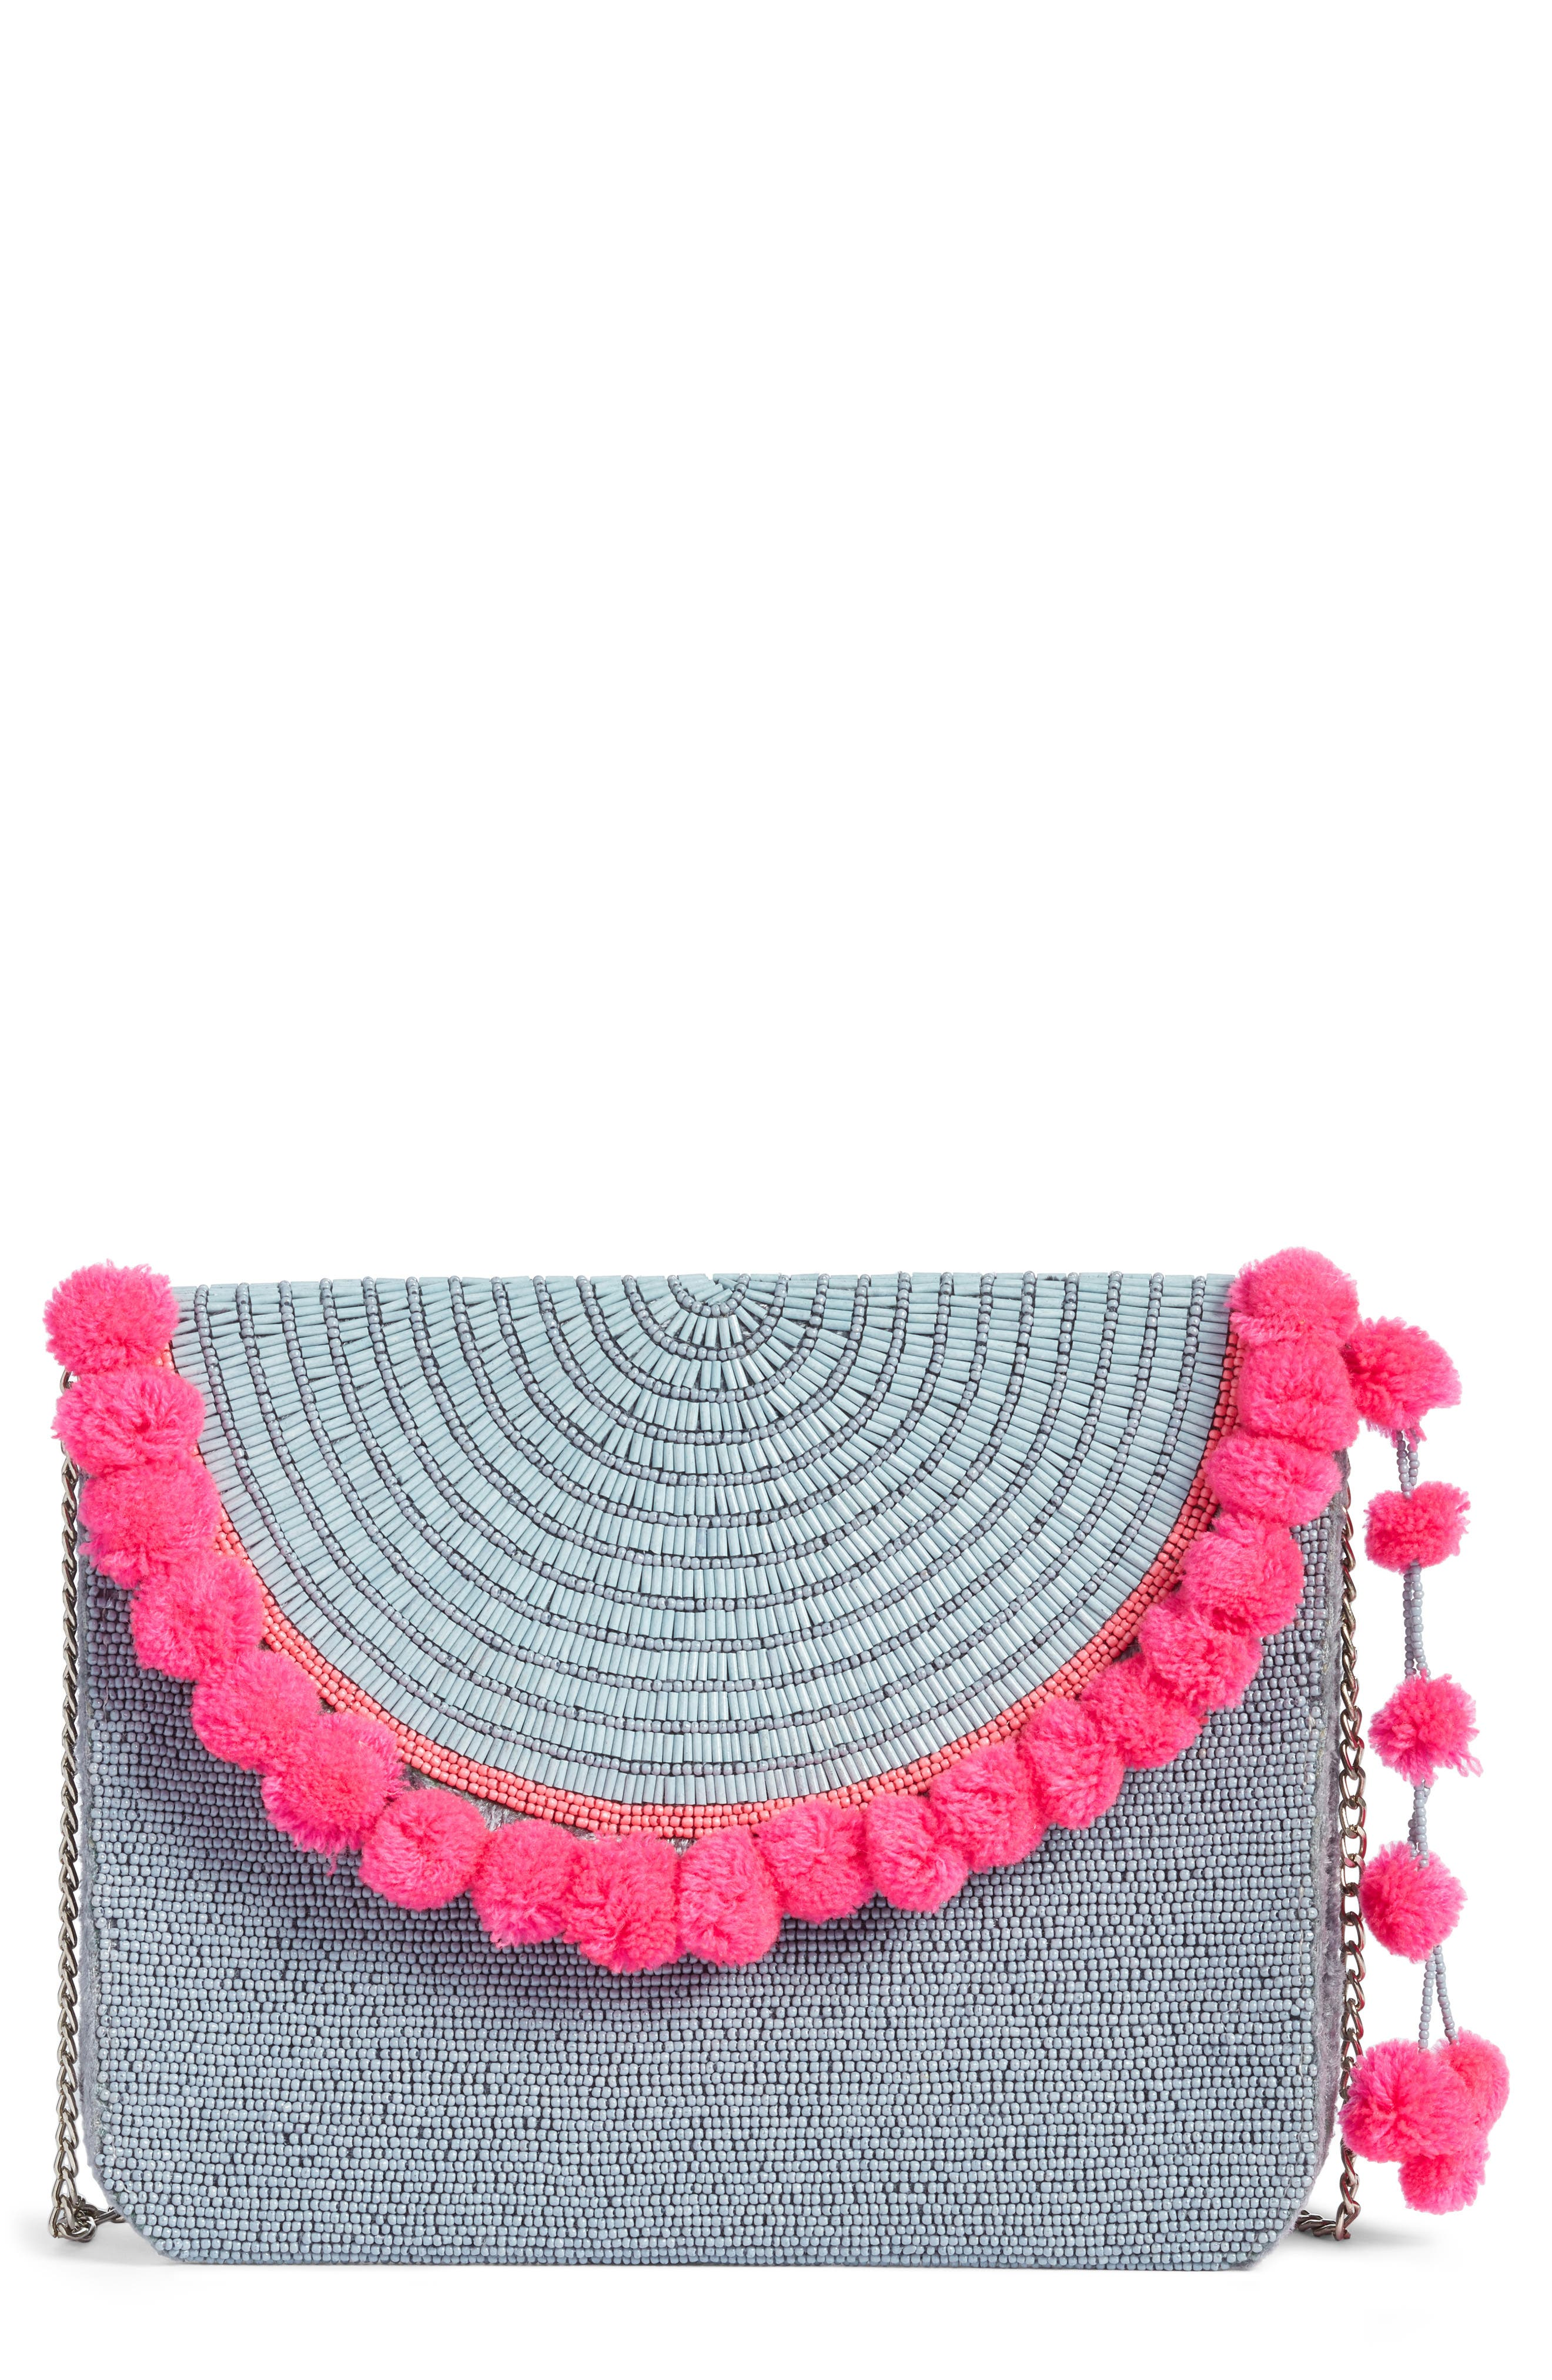 Mariah Beaded Clutch,                             Main thumbnail 1, color,                             BLUE/ PINK